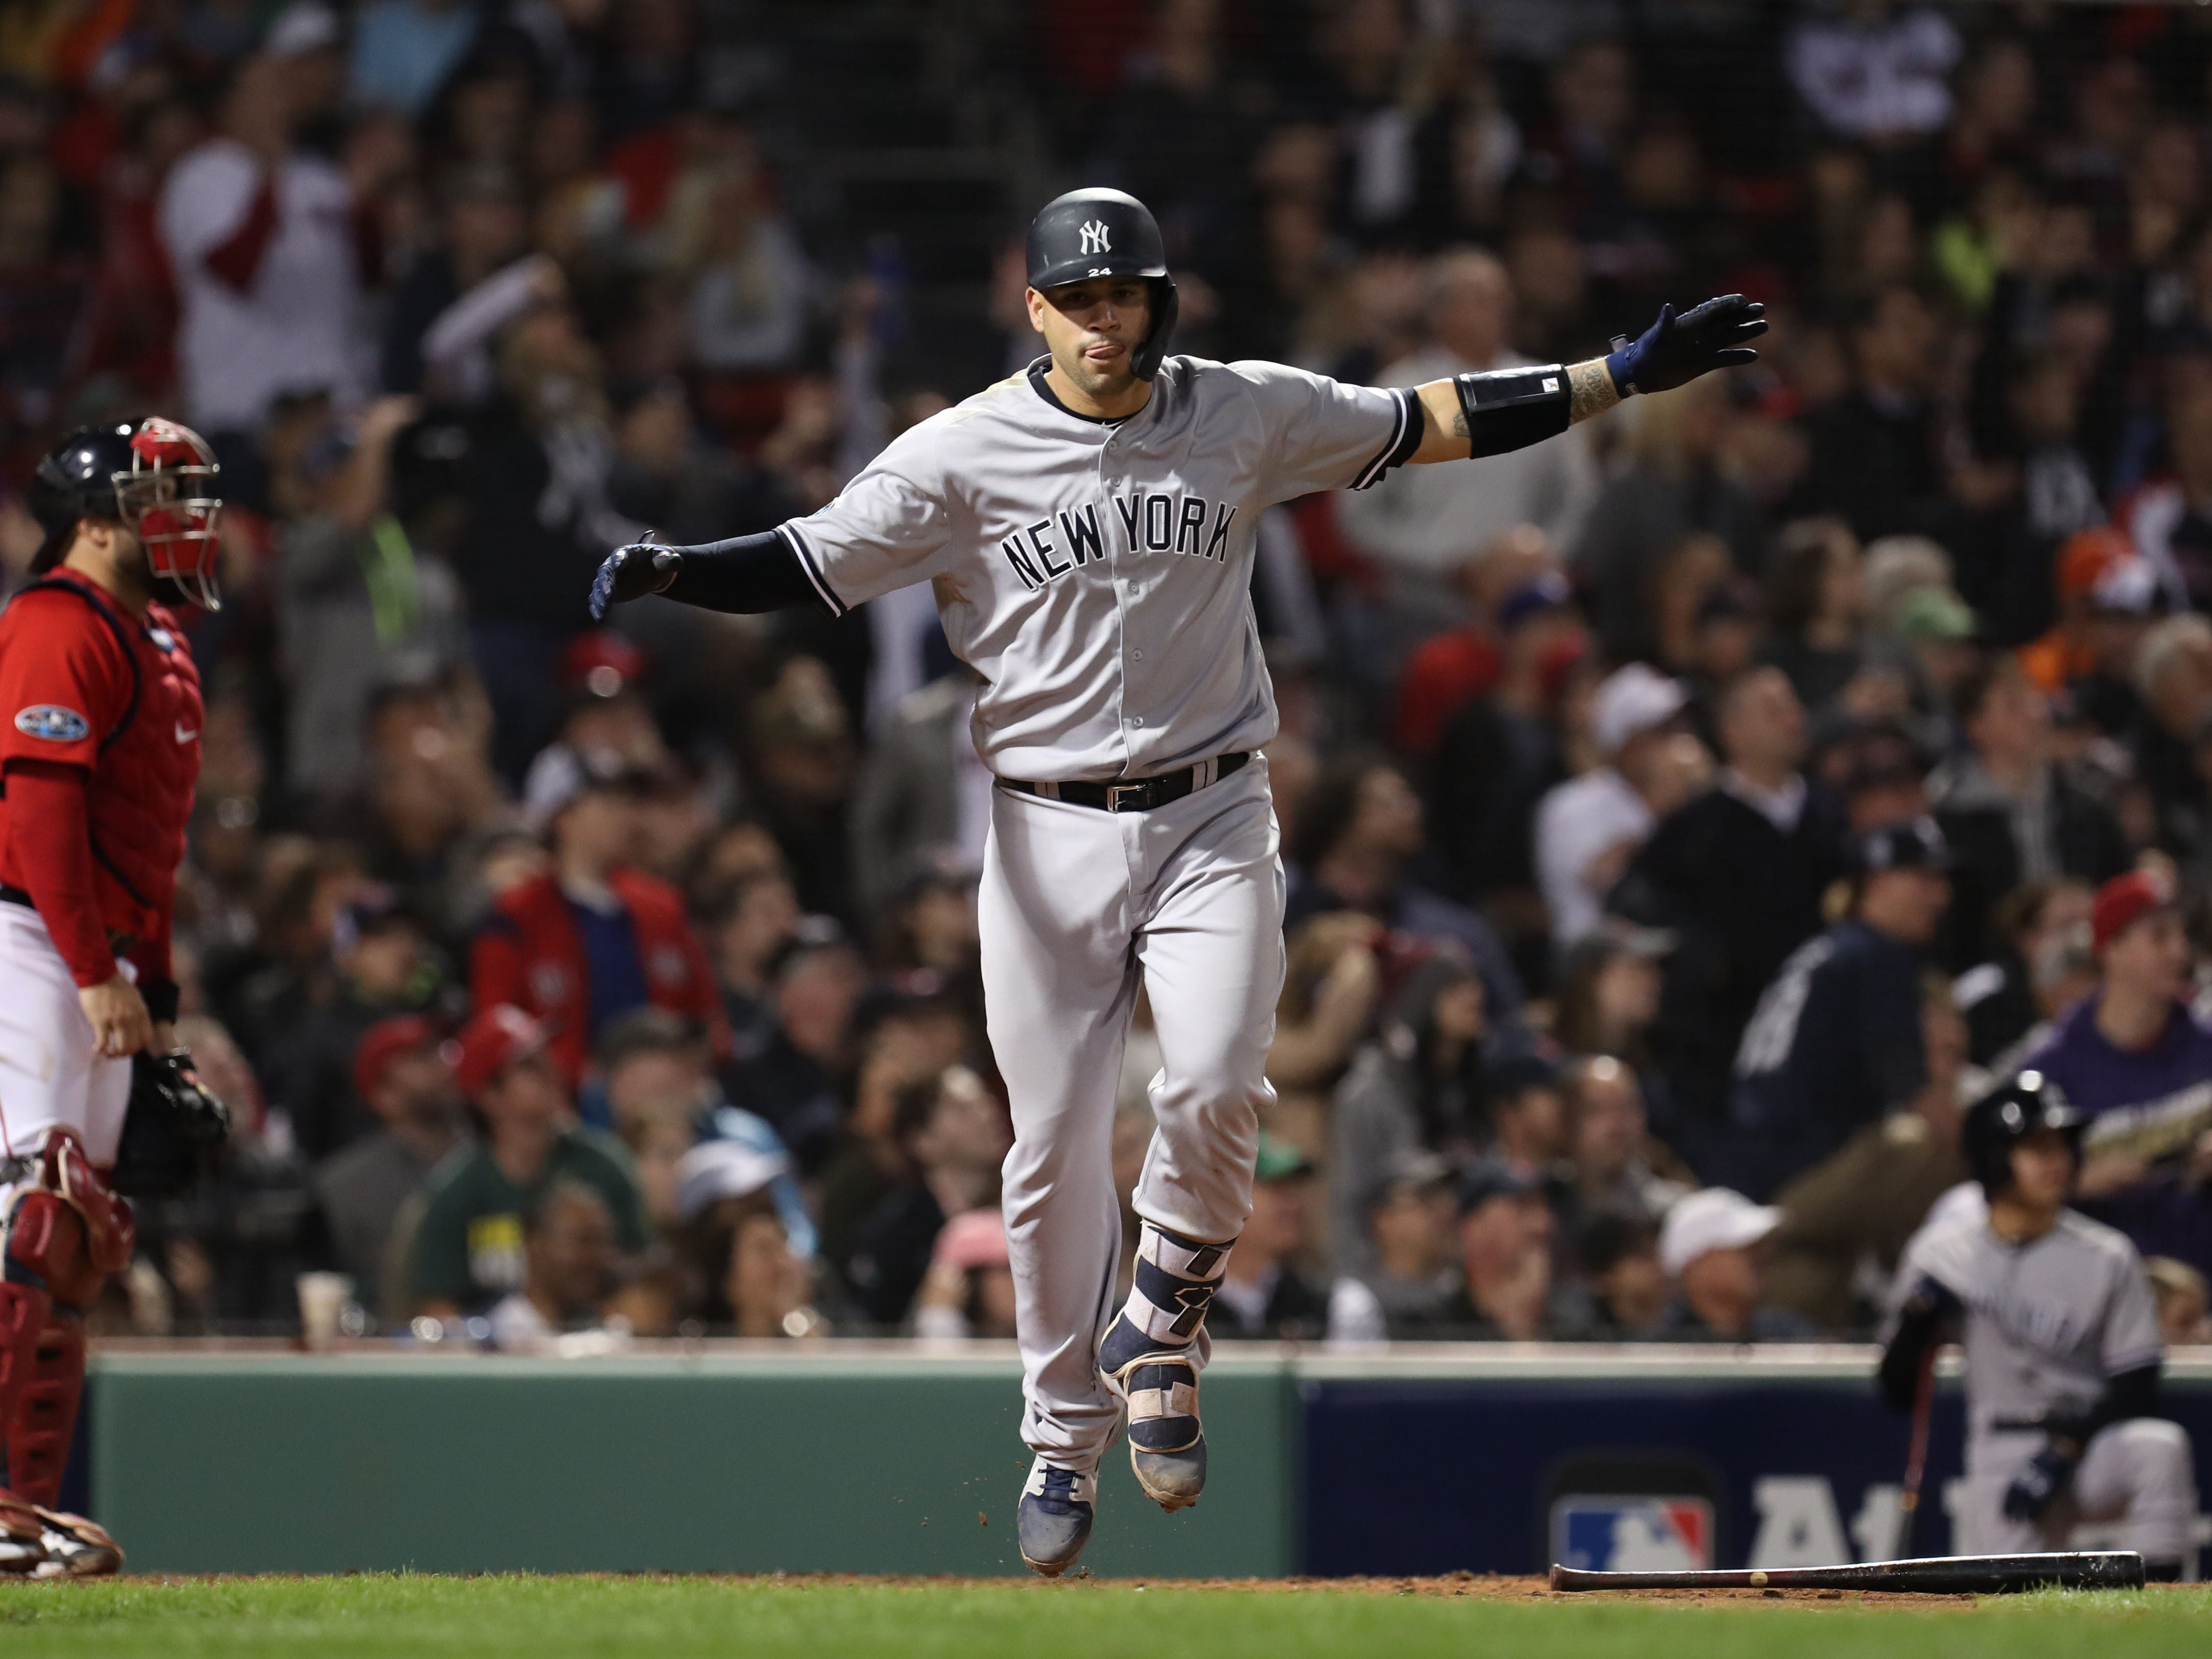 ALDS game 2: Yankees catcher Gary Sanchez slugs a three-run 479 foot home run in the seventh inning.